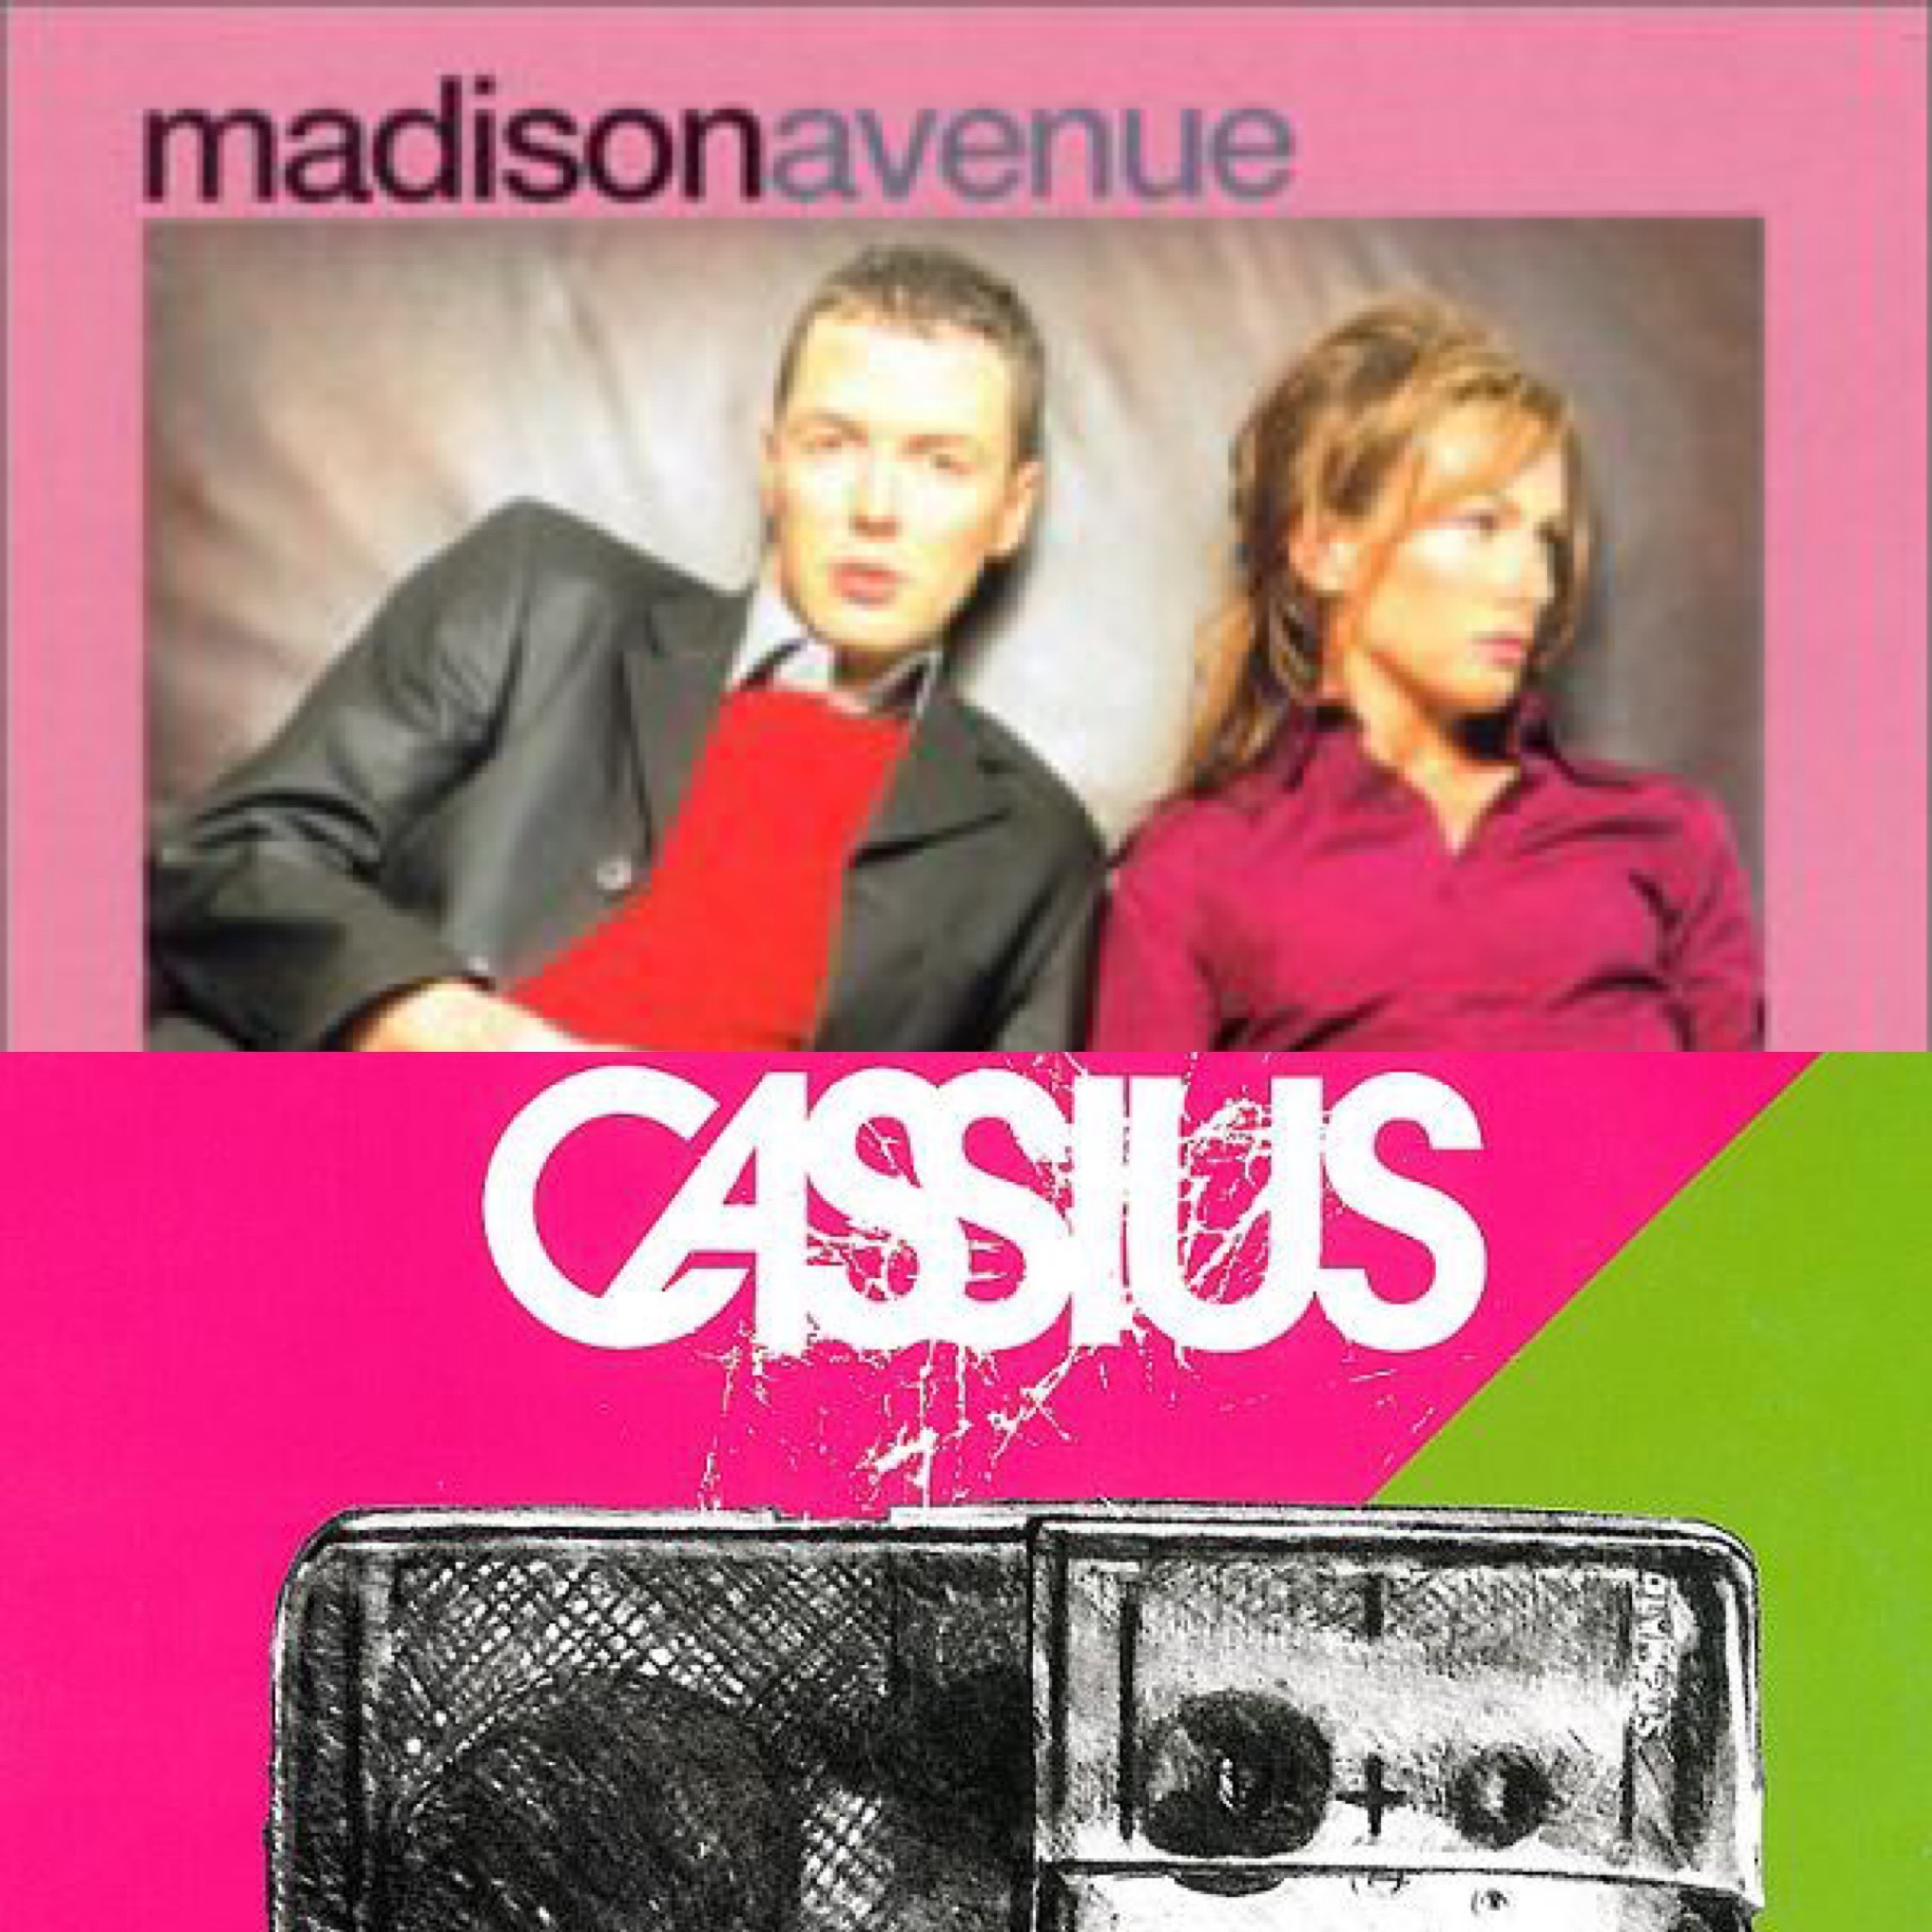 Fonky-M - Don't call me toop toop (Madison Avenue Vs Cassius) (2021)